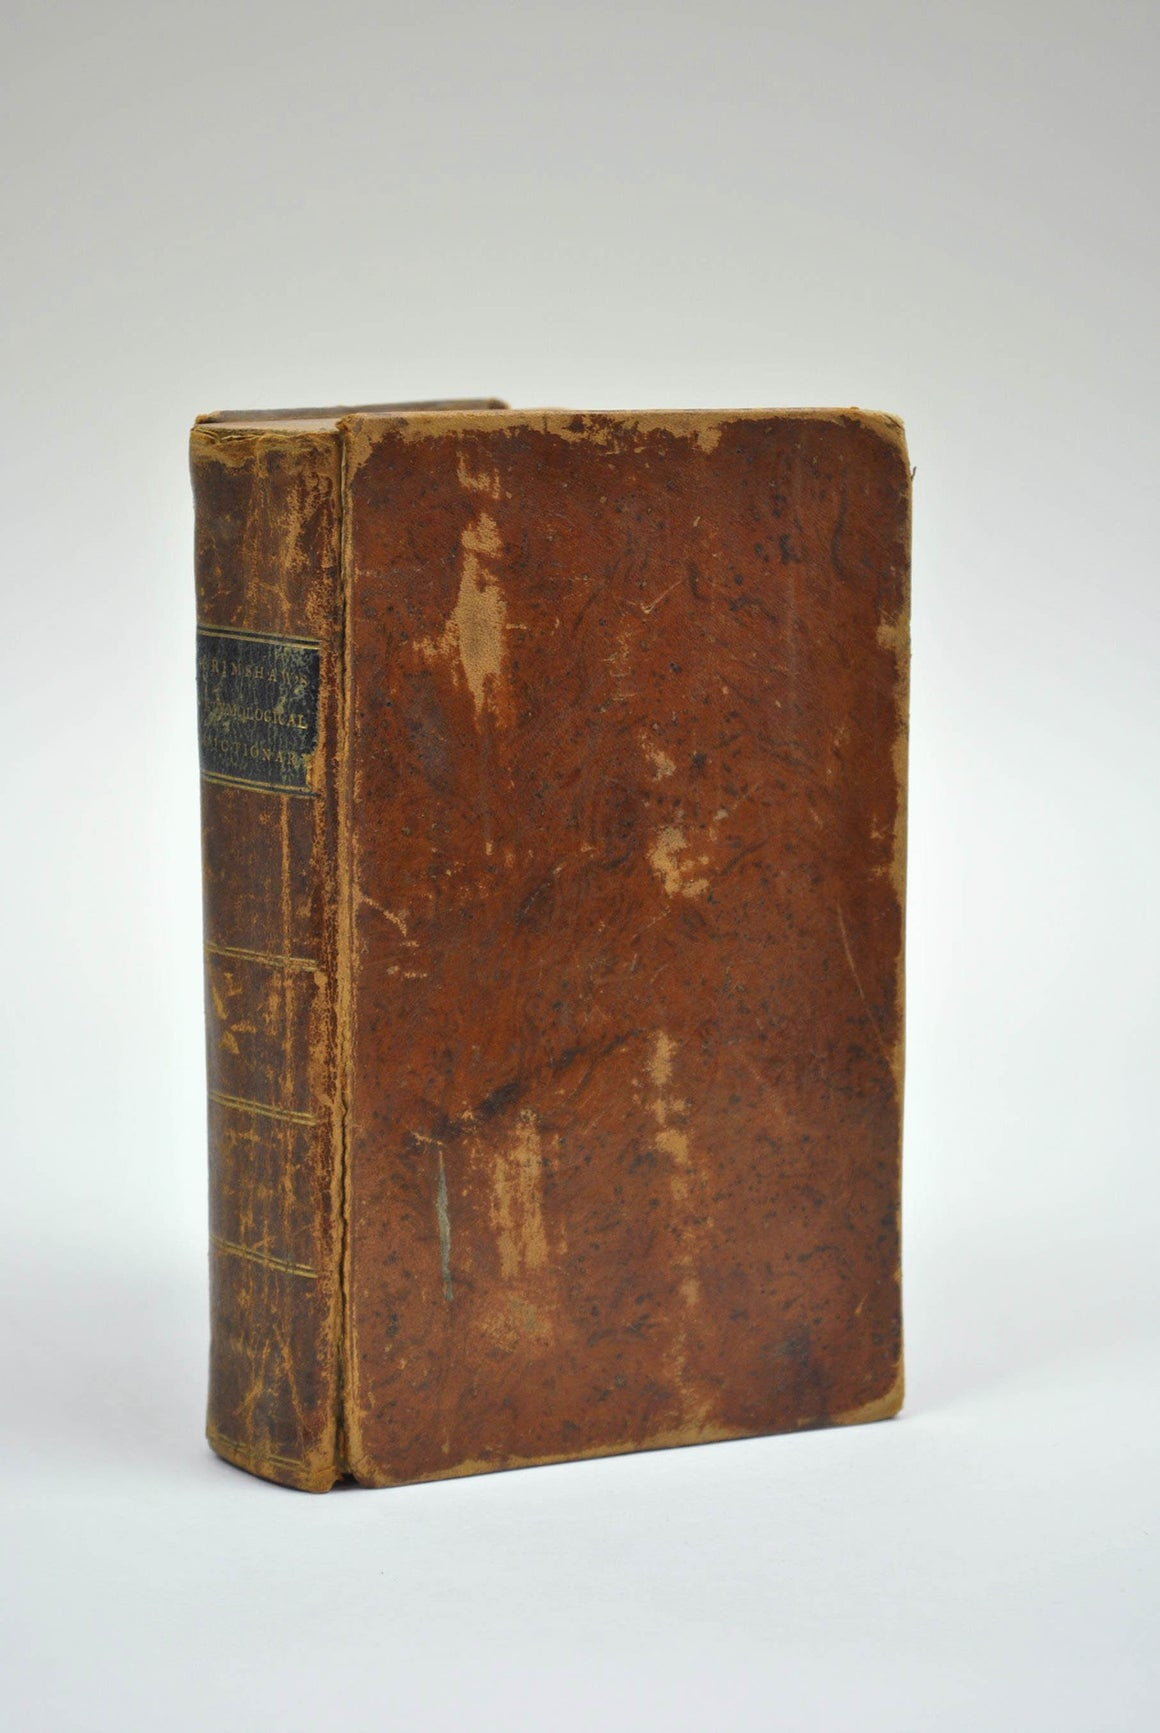 An Etymological Dictionary of the English Language by Will Grimshaw 1821